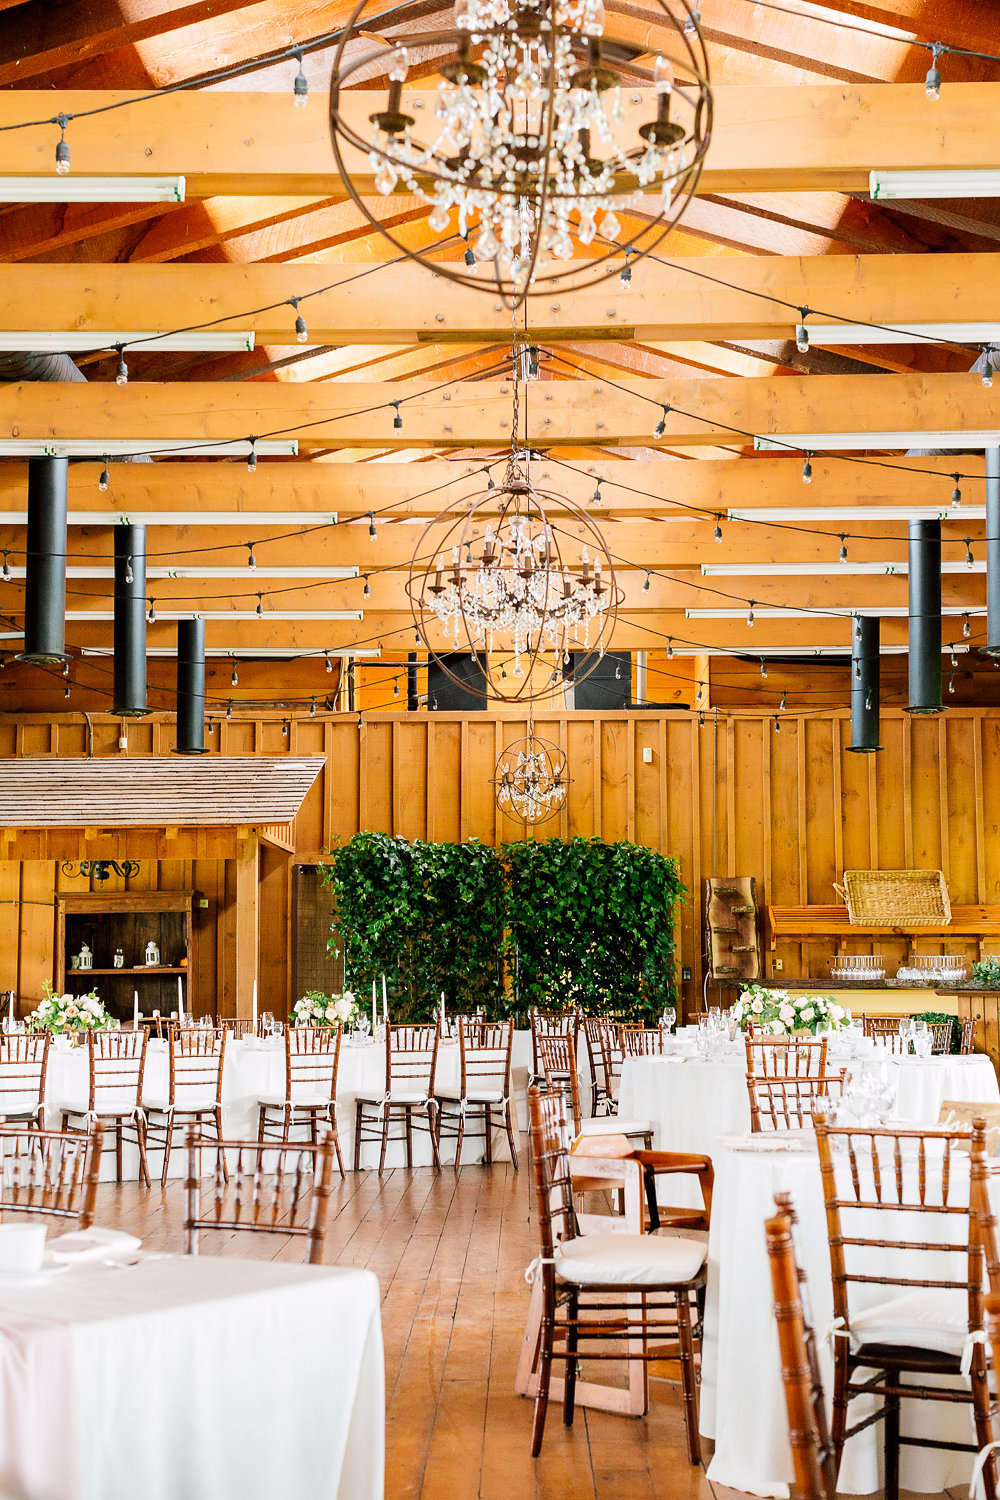 indoor wedding receptions - photo by Purple Tree Photography http://ruffledblog.com/charming-wine-country-wedding-at-kurtz-orchard